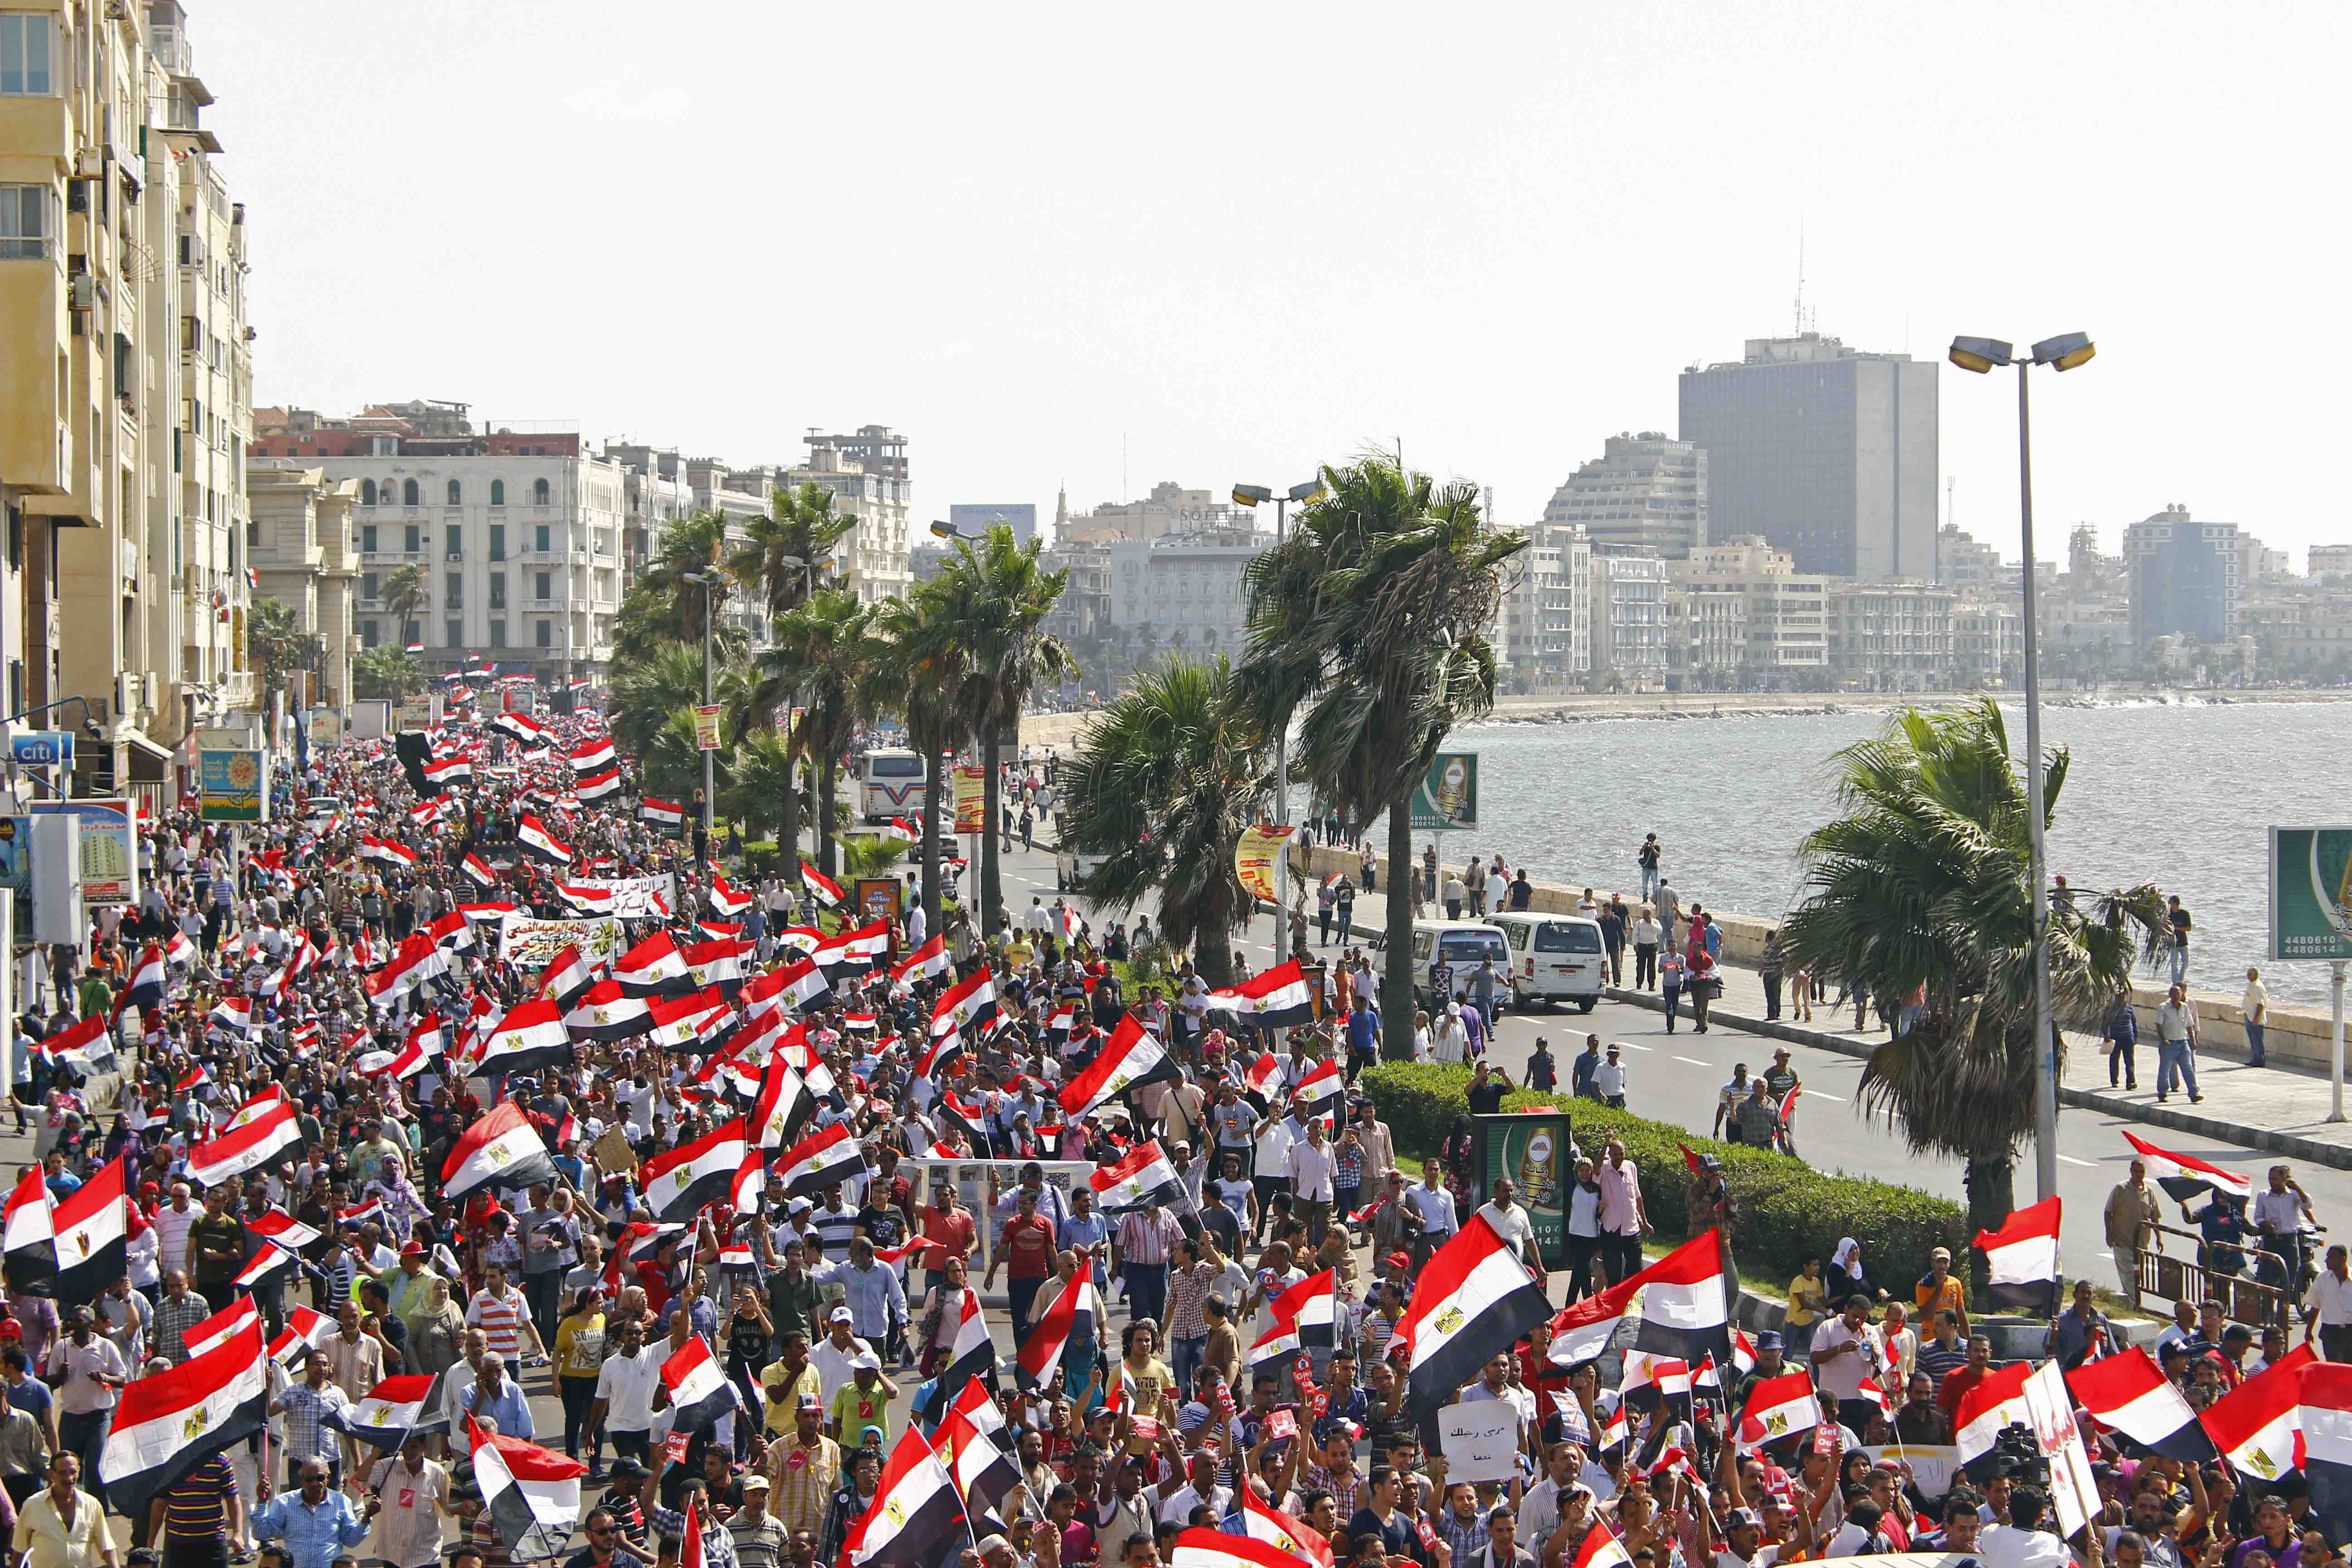 Protesters gathered in Alexandria June 30,2013. (Photo by Ahmed Arab)